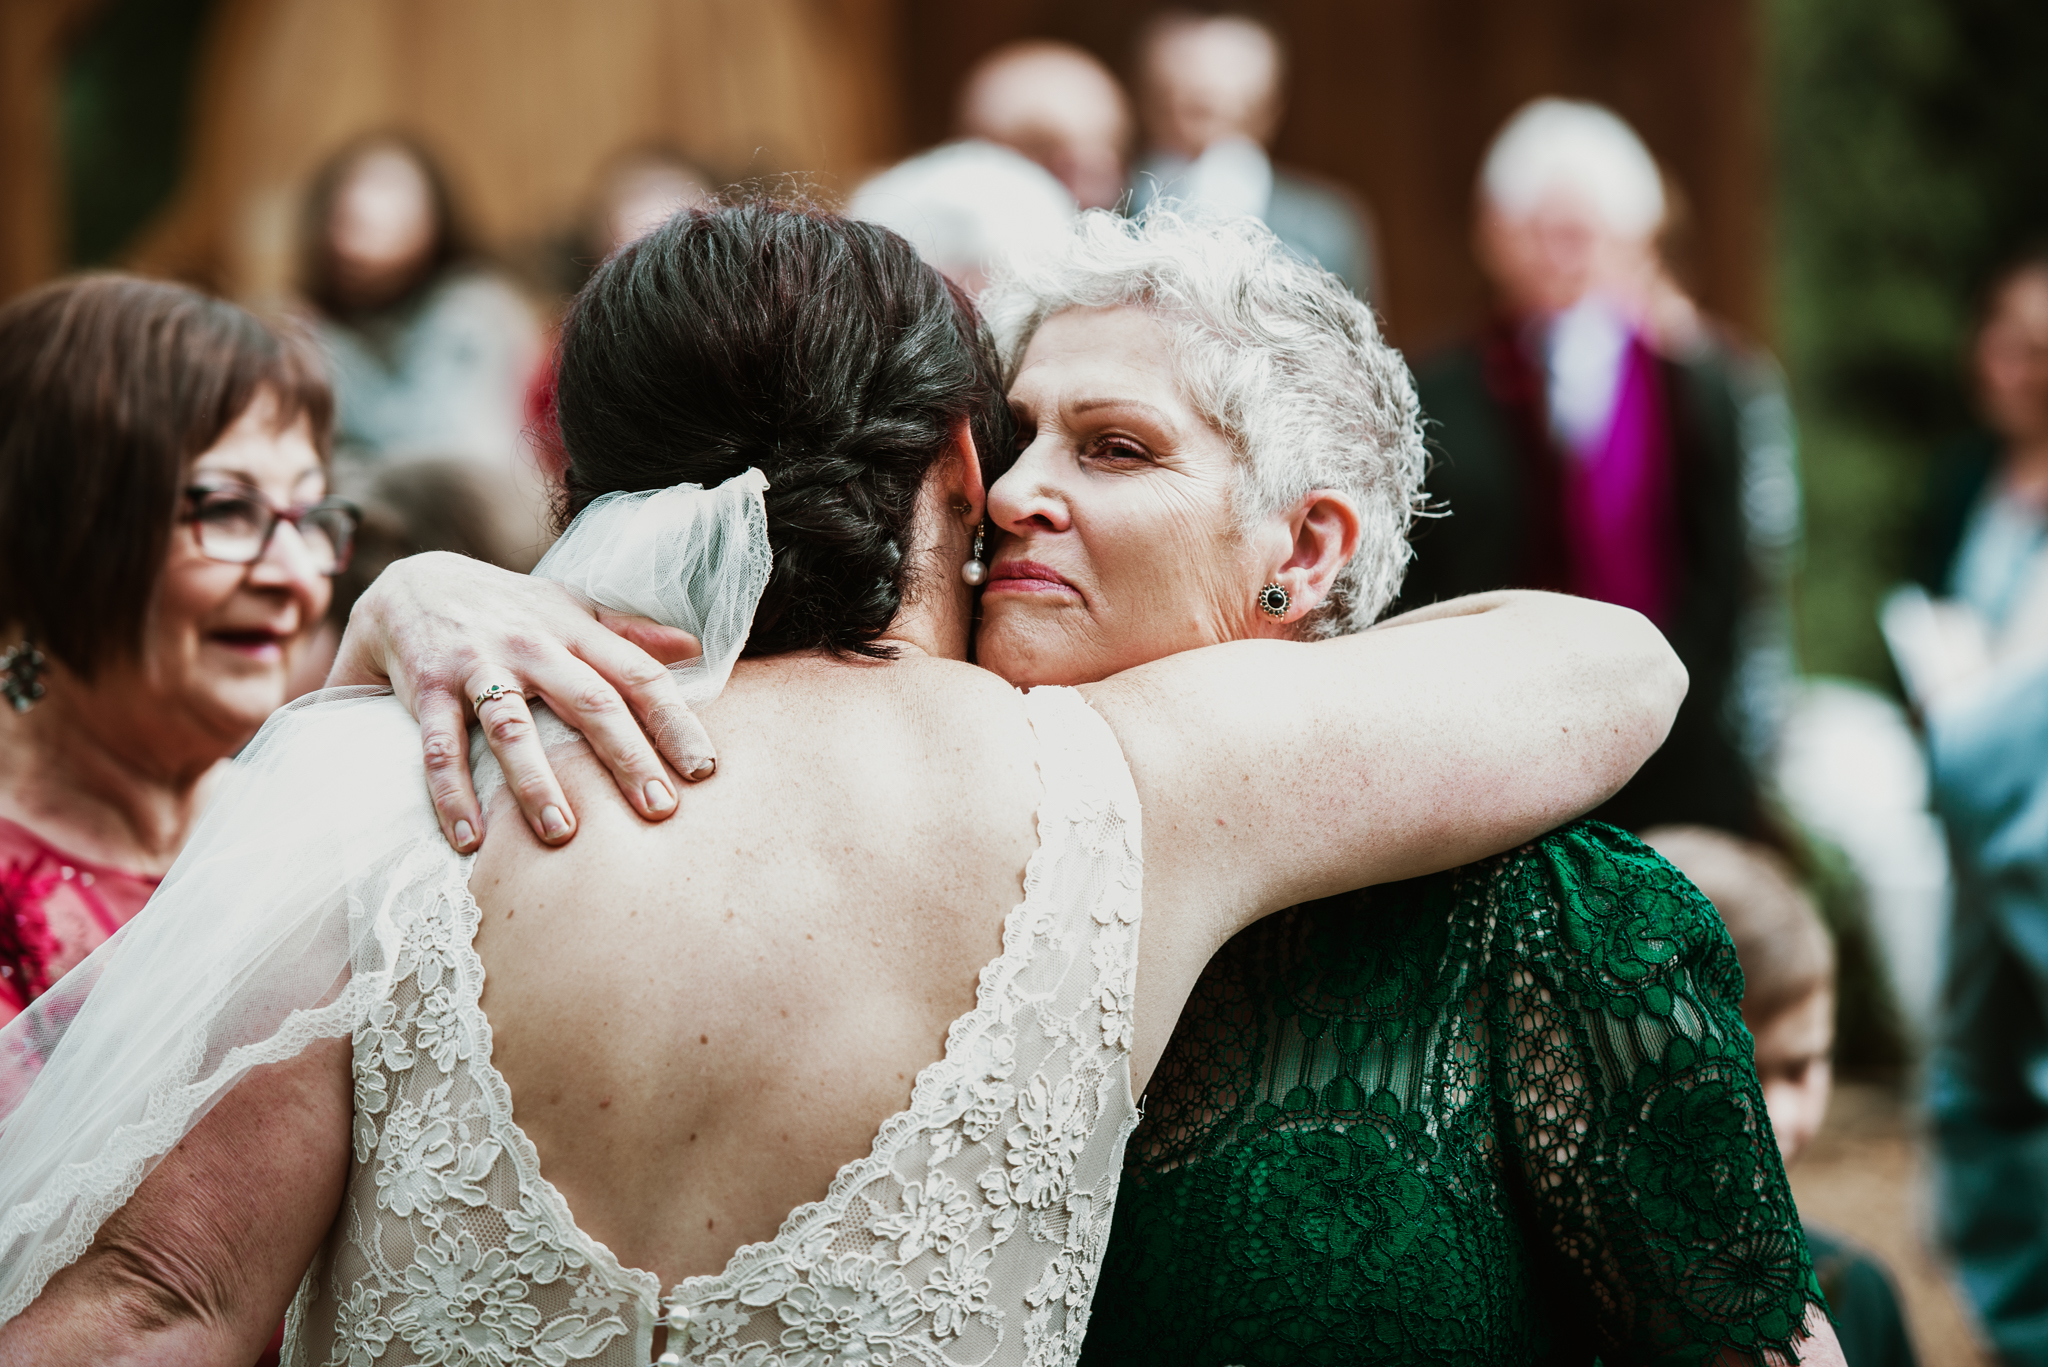 launceston wedding photography-58.jpg